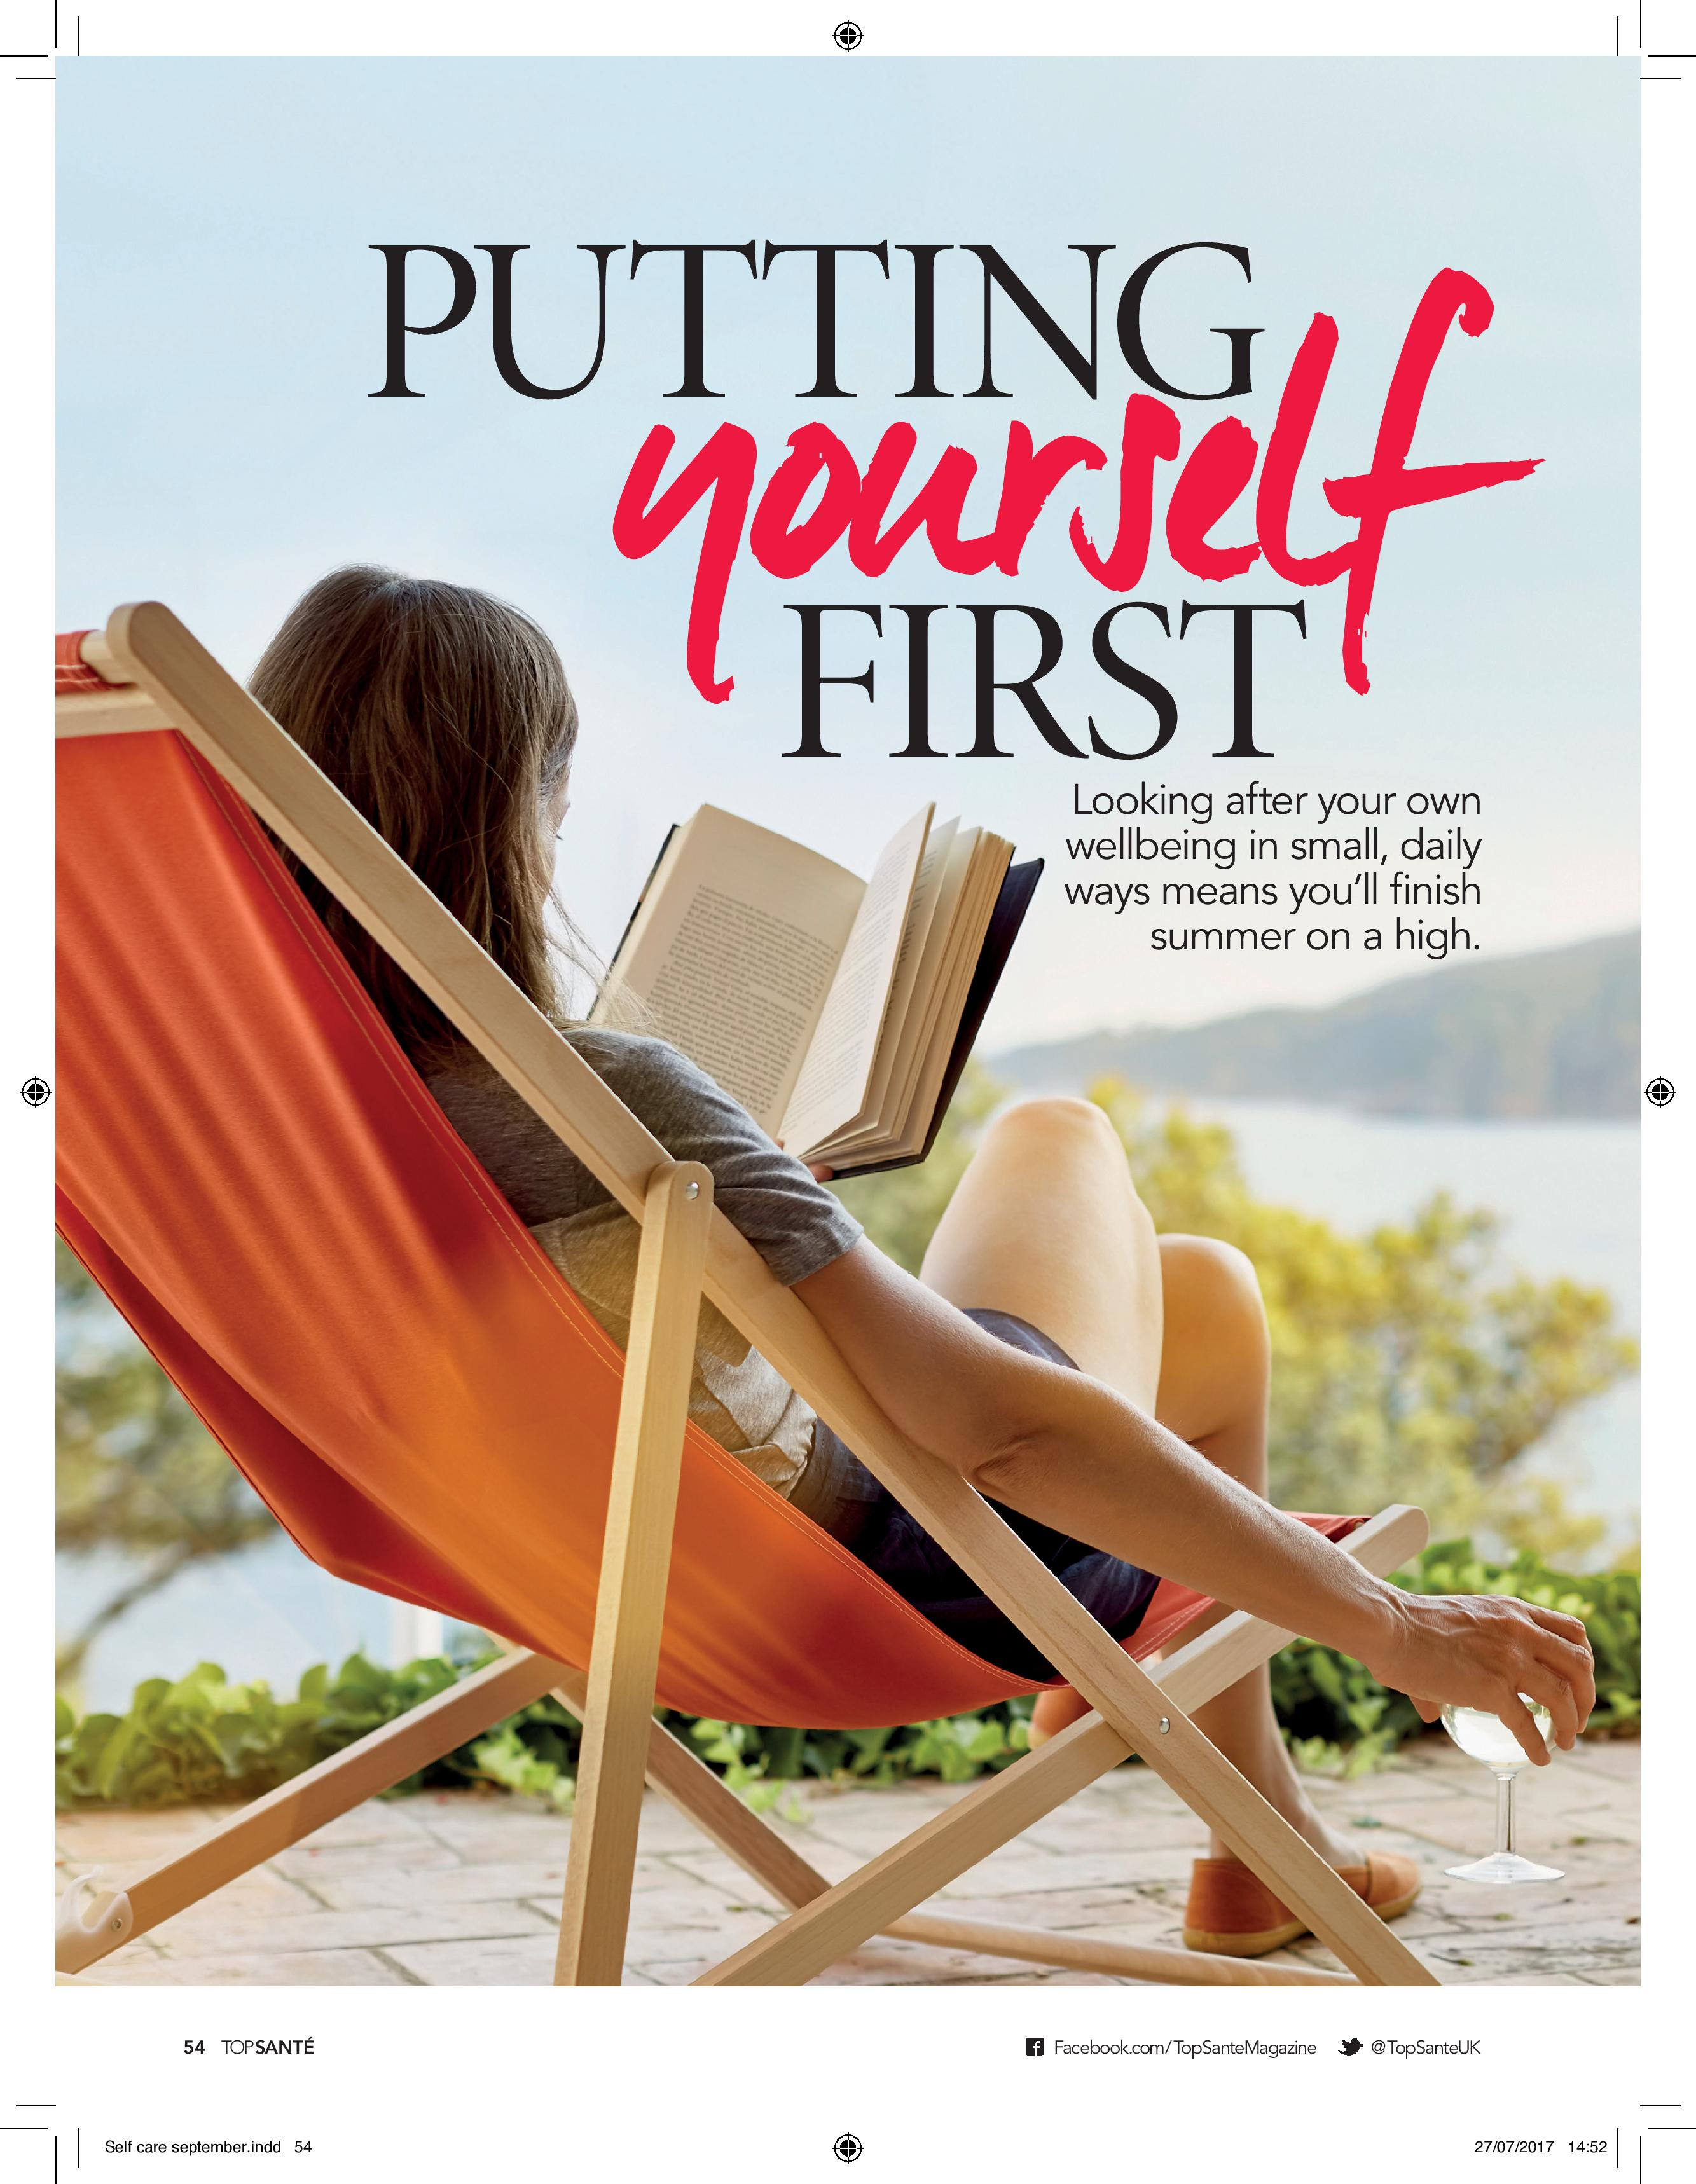 Putting Yourself First (Top Sante, Aug 2017)